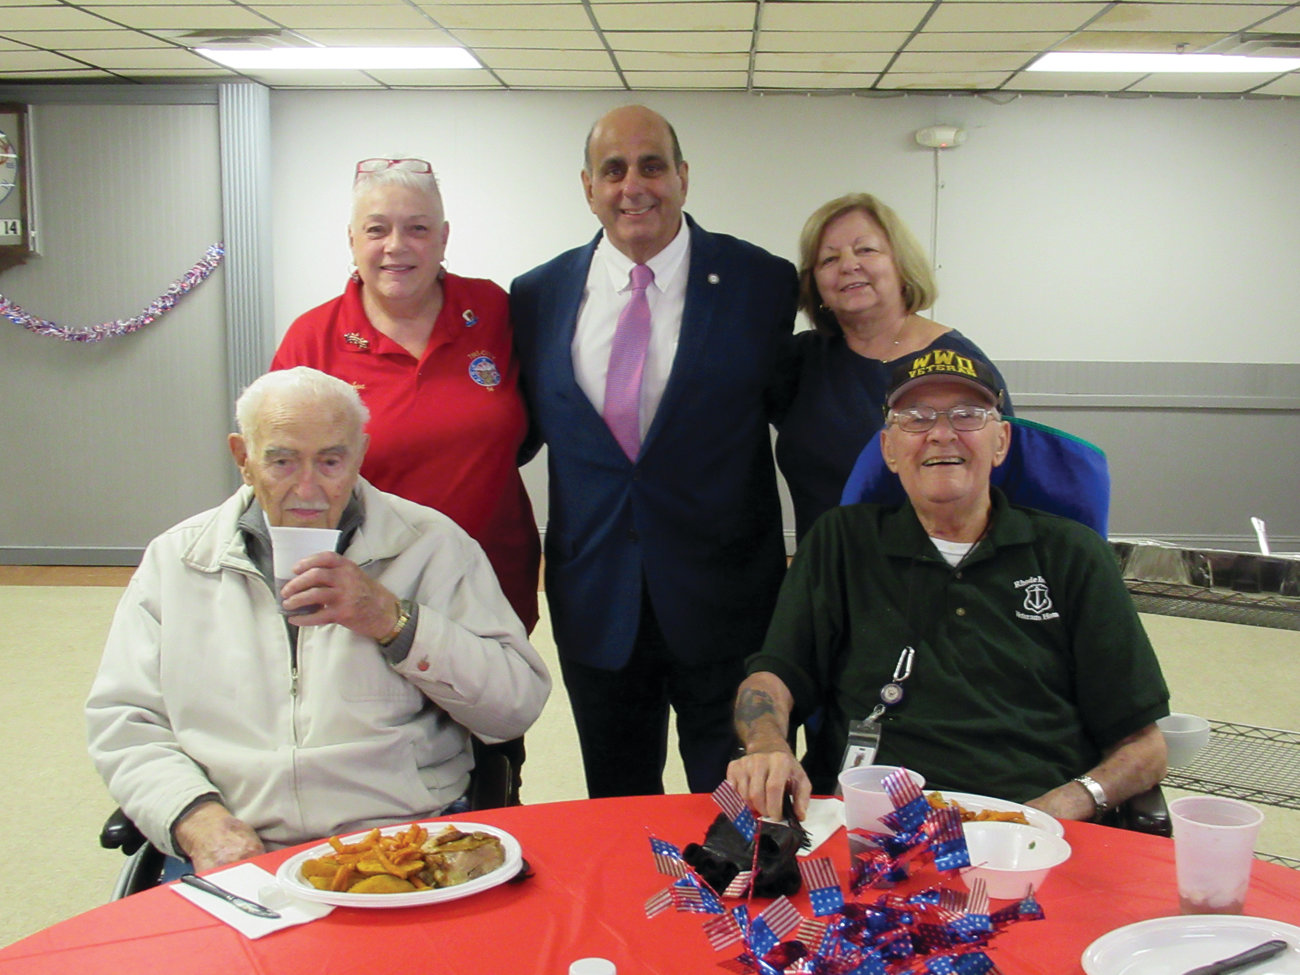 WARM WELCOME: Warwick Mayor Joseph Solomon, along with Elks volunteers Ann Licciardi and Cynthia Holmes welcome U.S. Air Force veterans Rudy Viens and U.S. Navy veteran John D'Angelo to last Thursday's D-Day Luncheon.